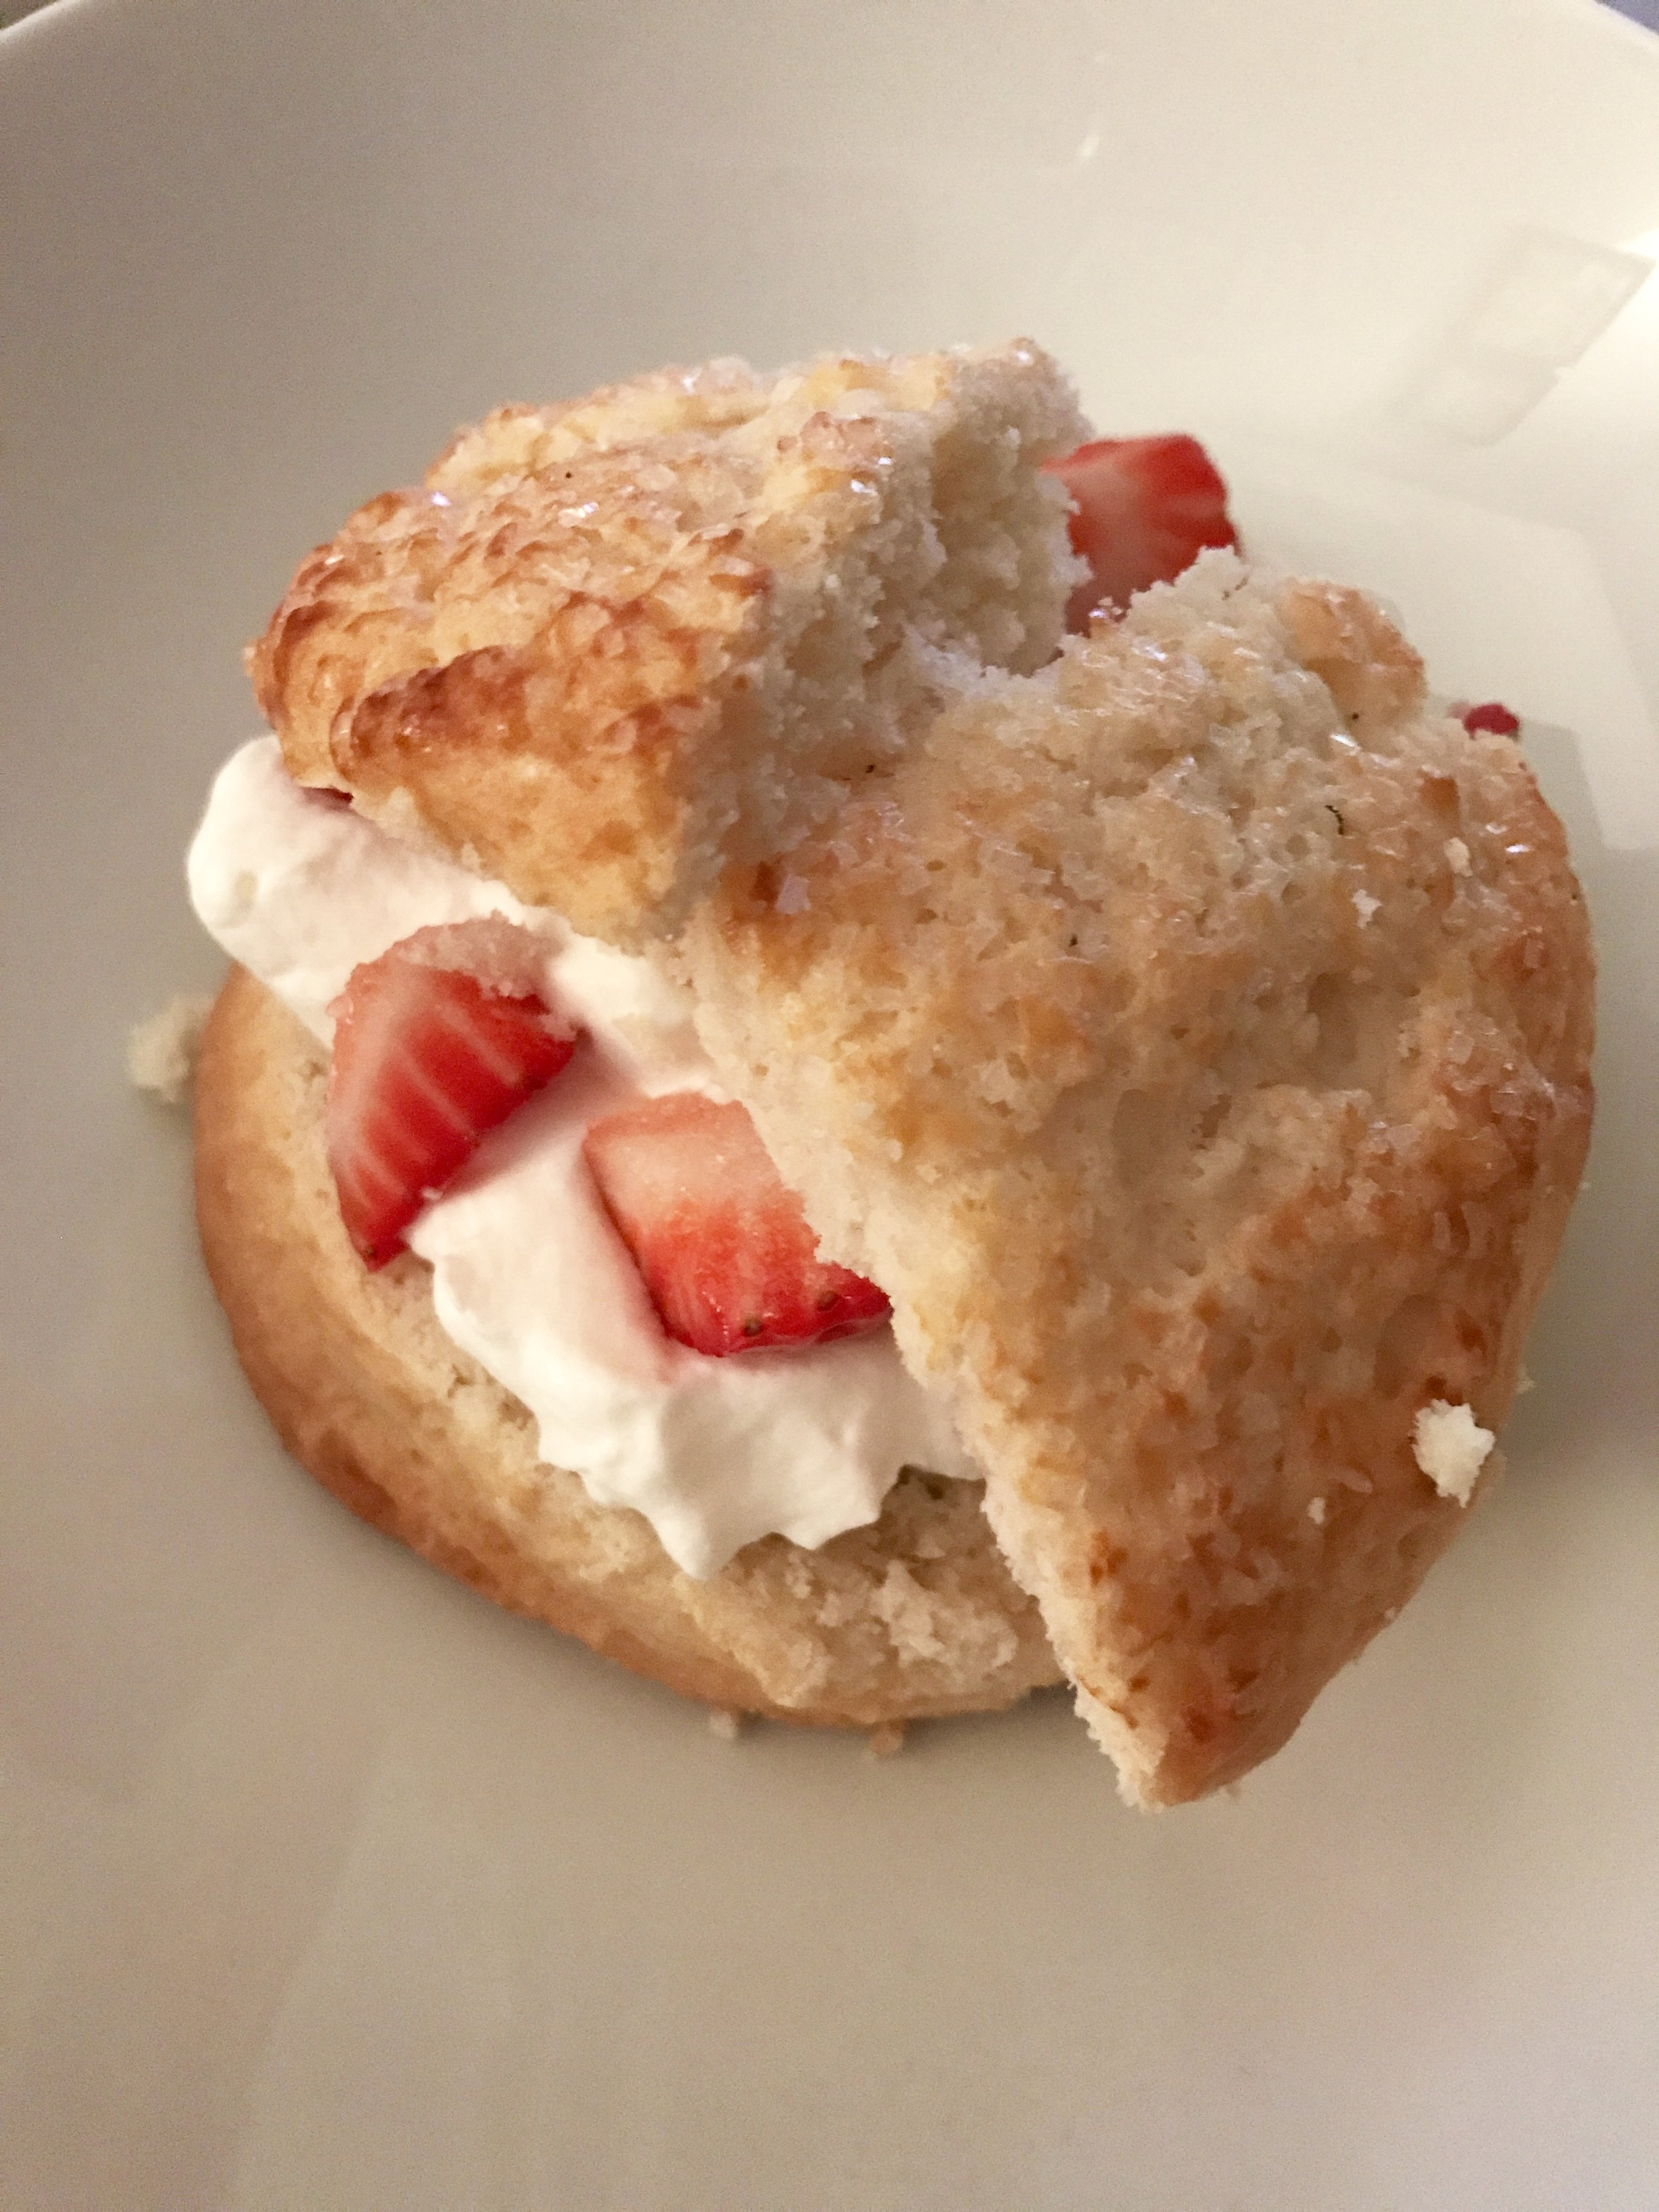 My Husband made this amazing strawberry shortcake for a treat on Saturday night!